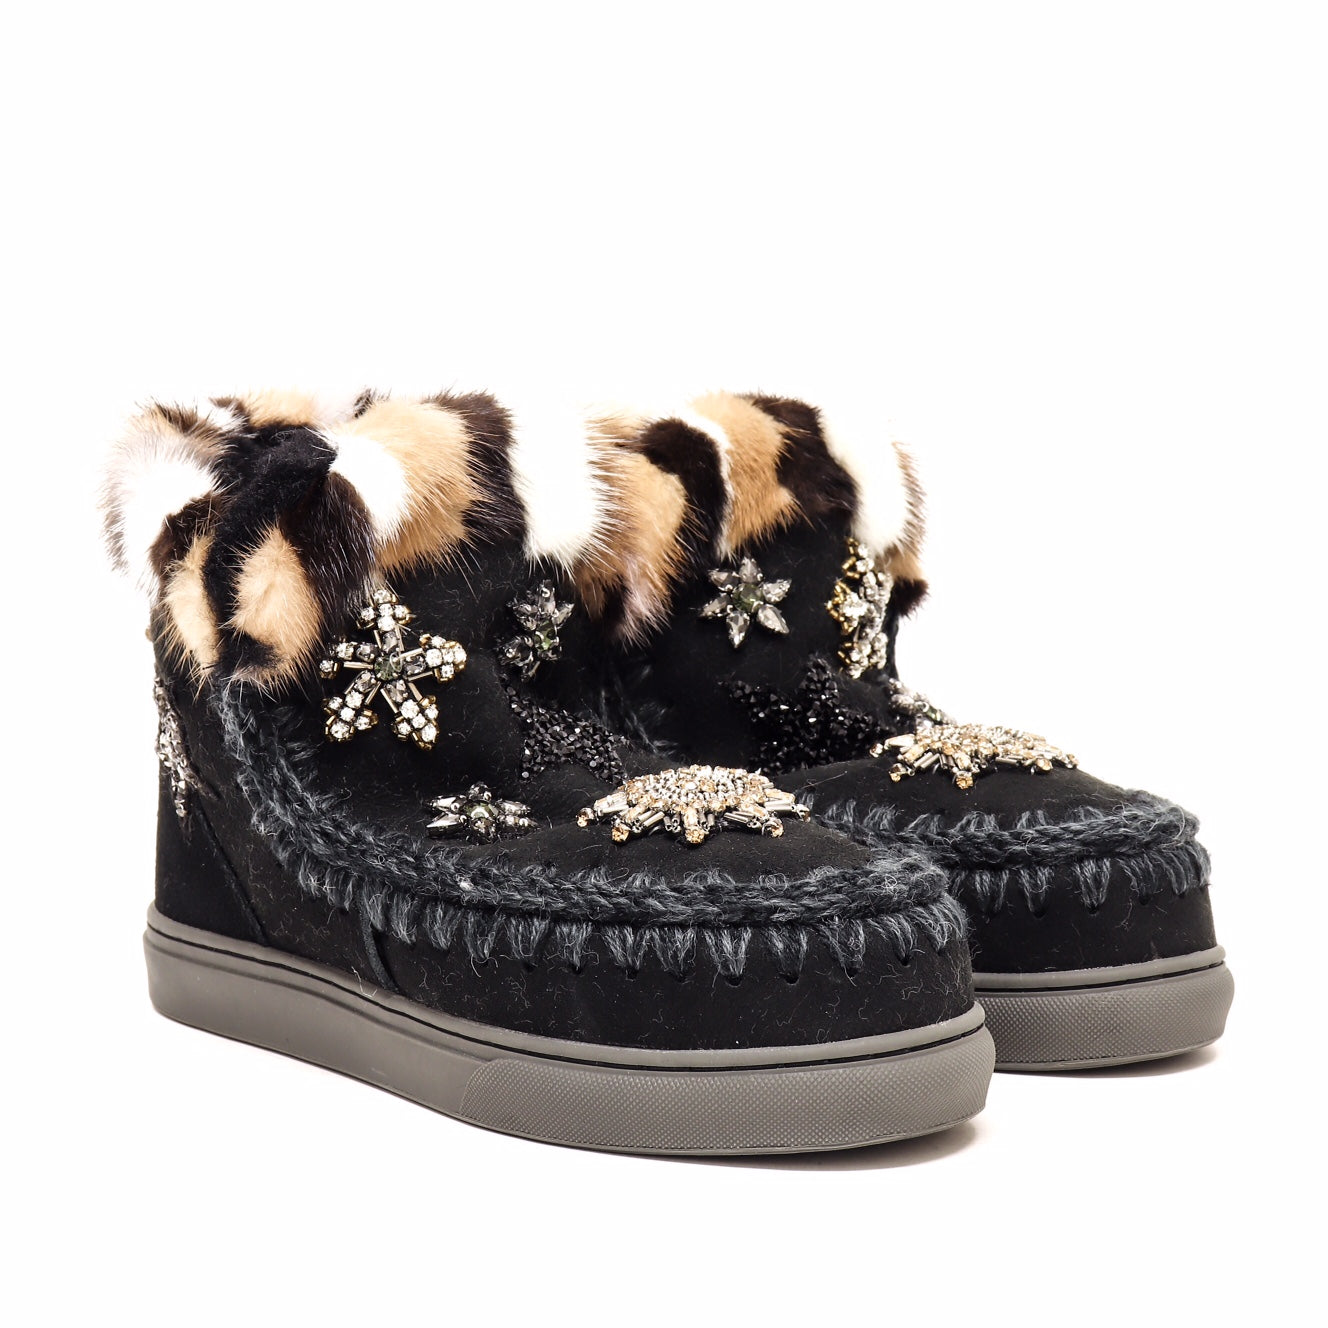 Mou Tronchetto Eskimo Sneak Star Patch Mink